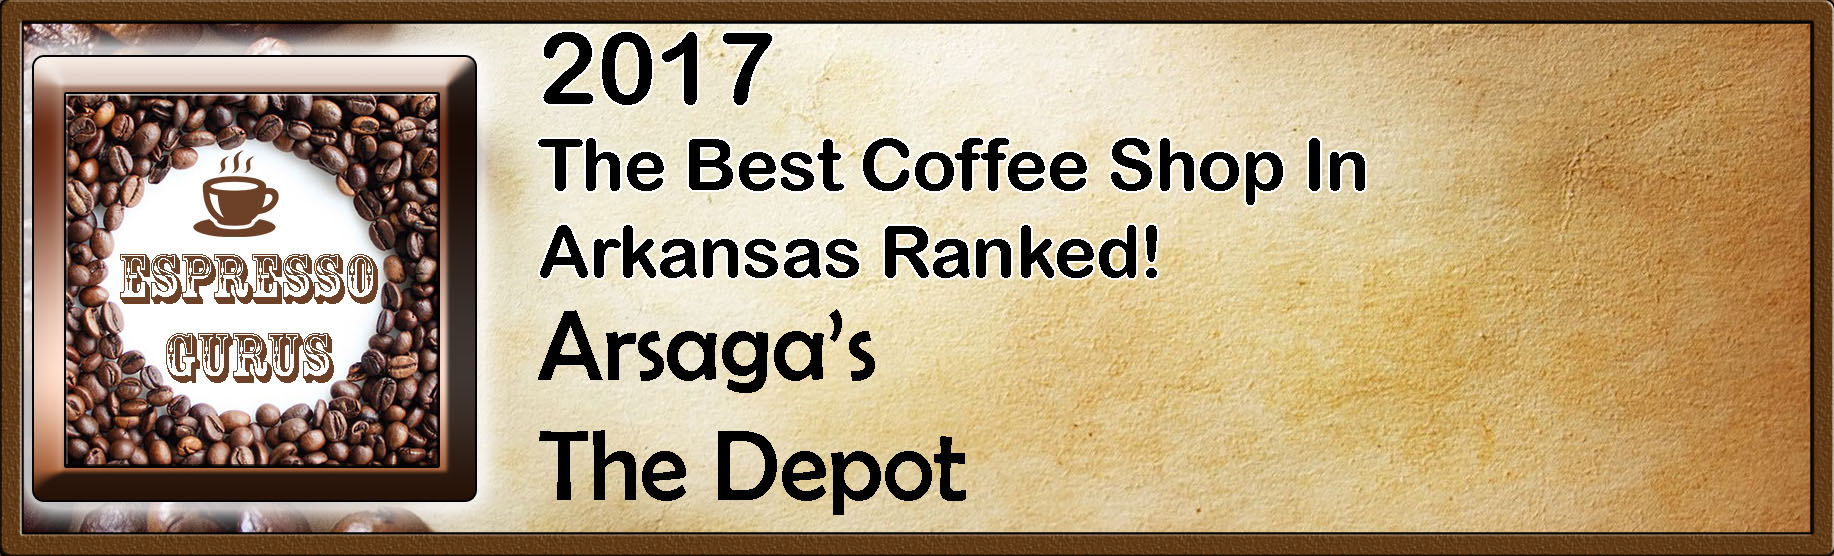 The Best Coffee Shop In Arkansas Ranked - 2017